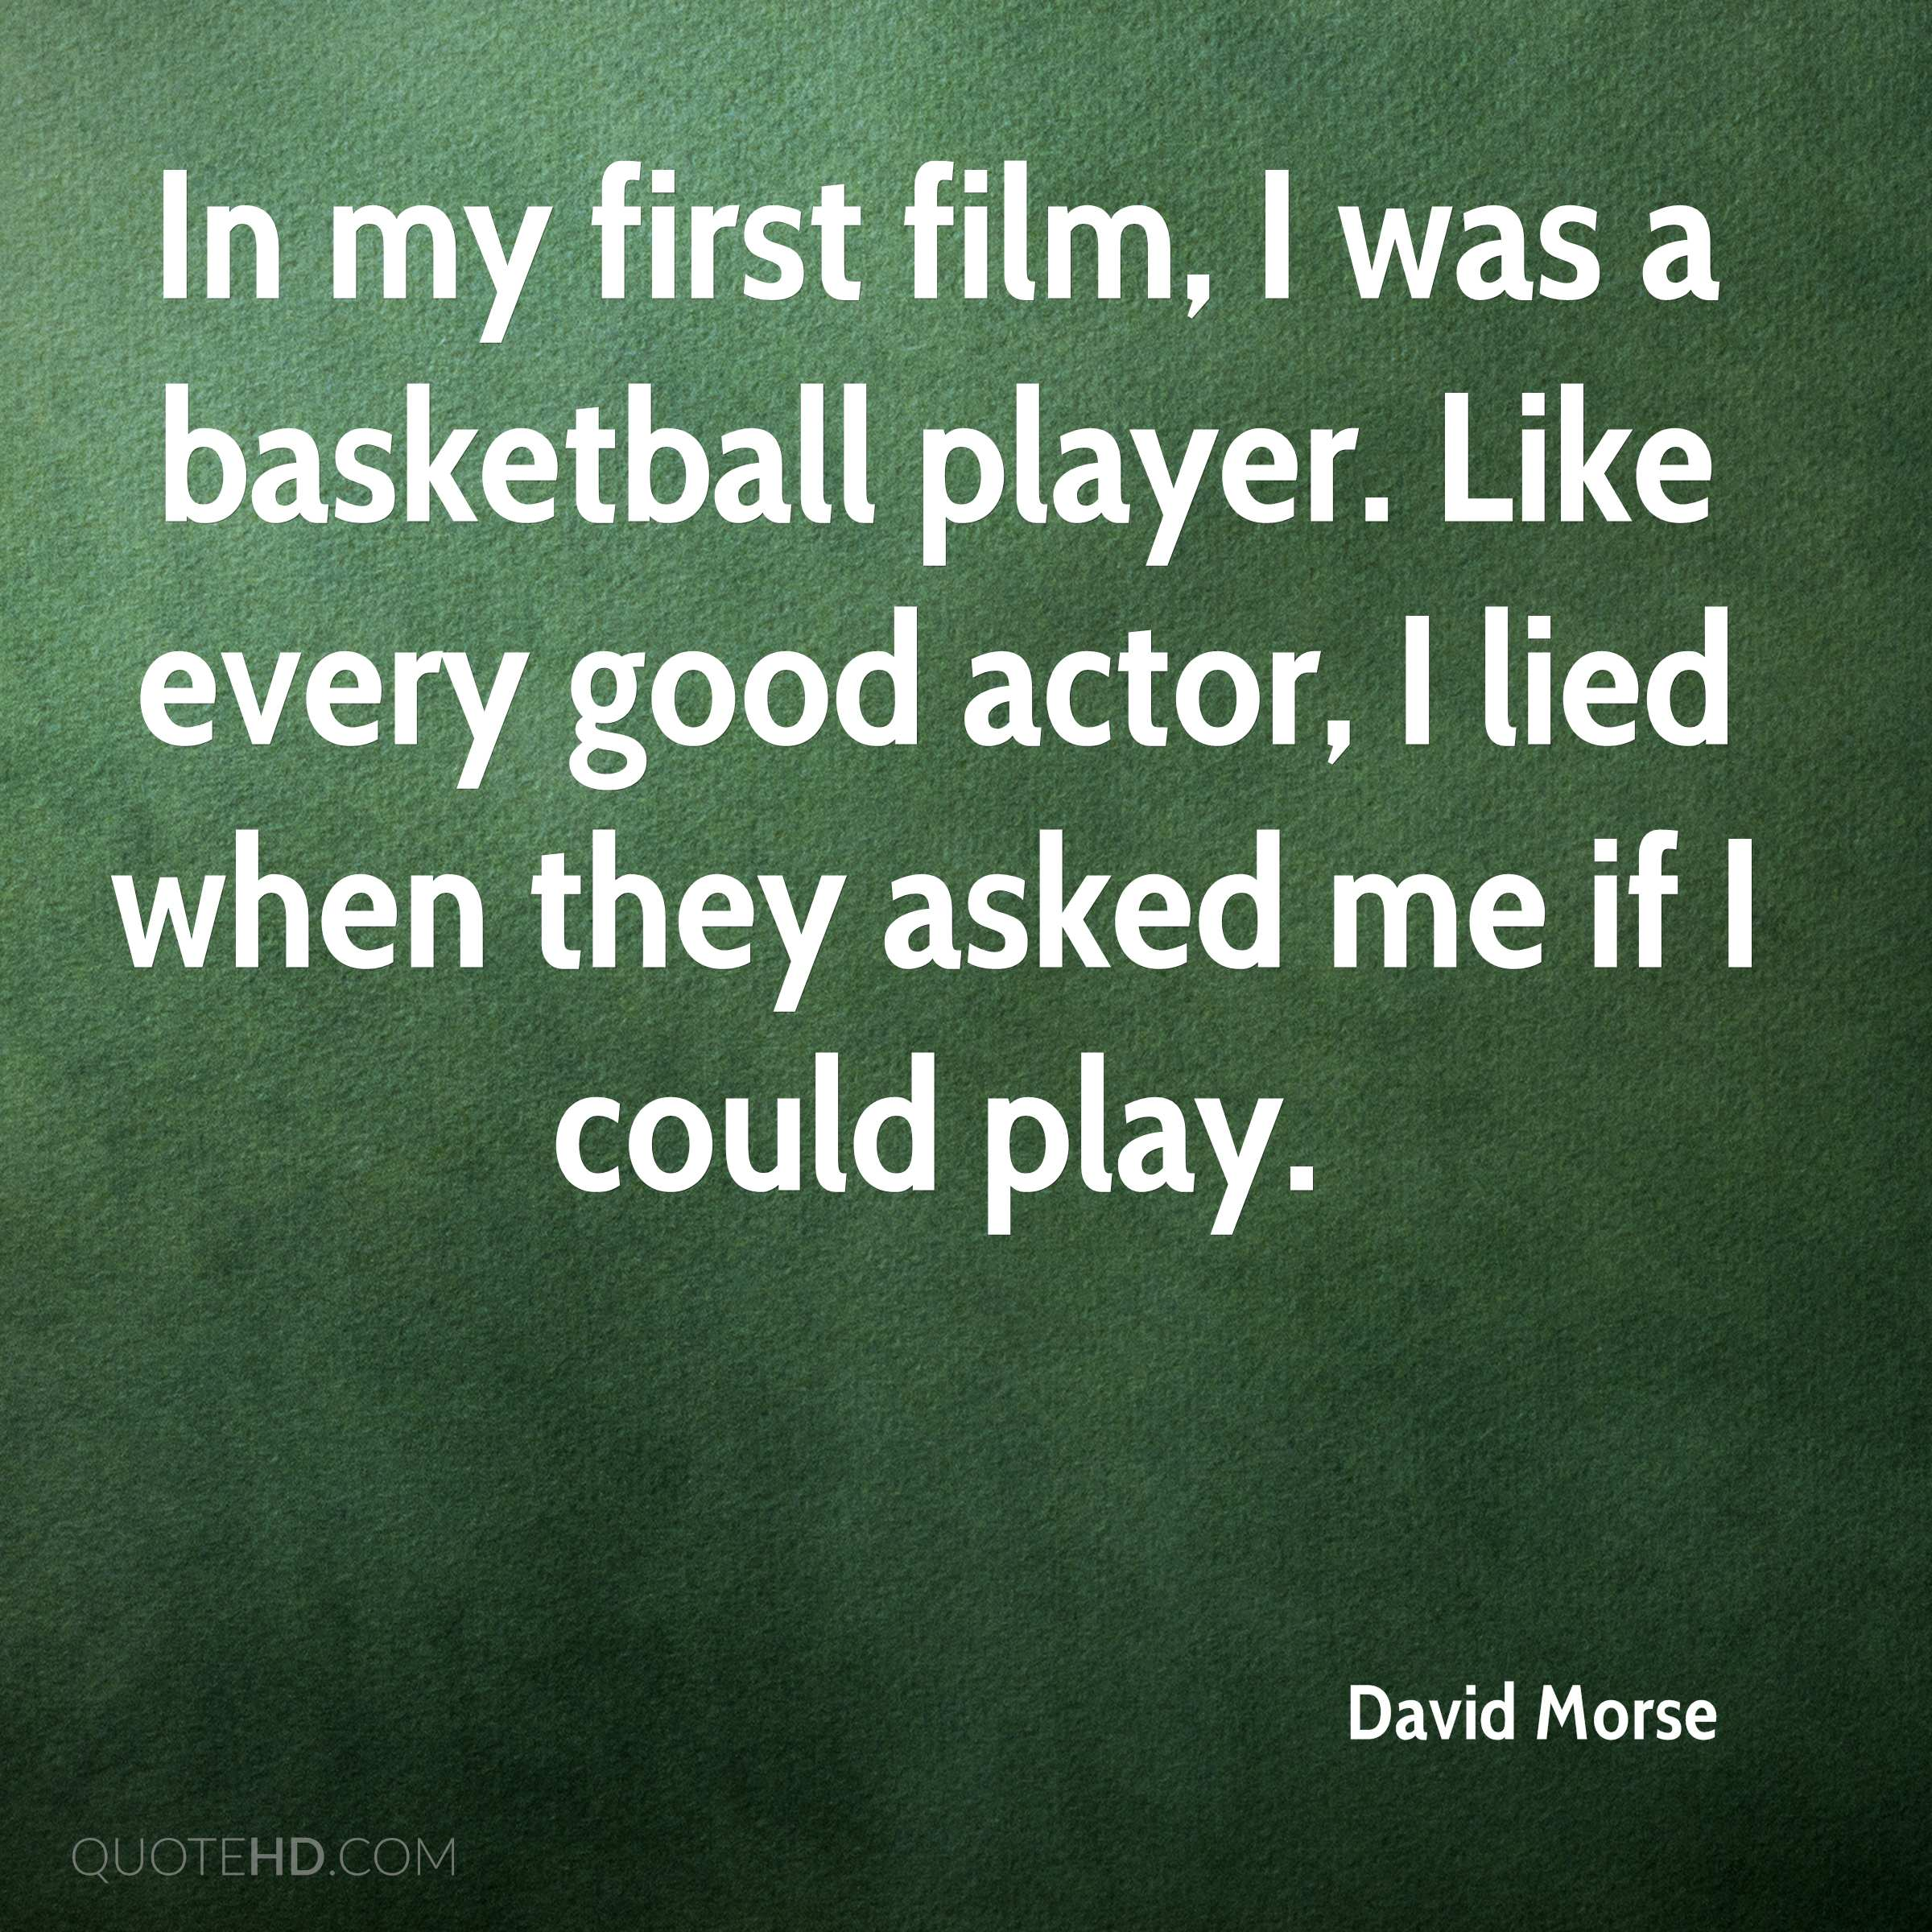 In my first film, I was a basketball player. Like every good actor, I lied when they asked me if I could play.